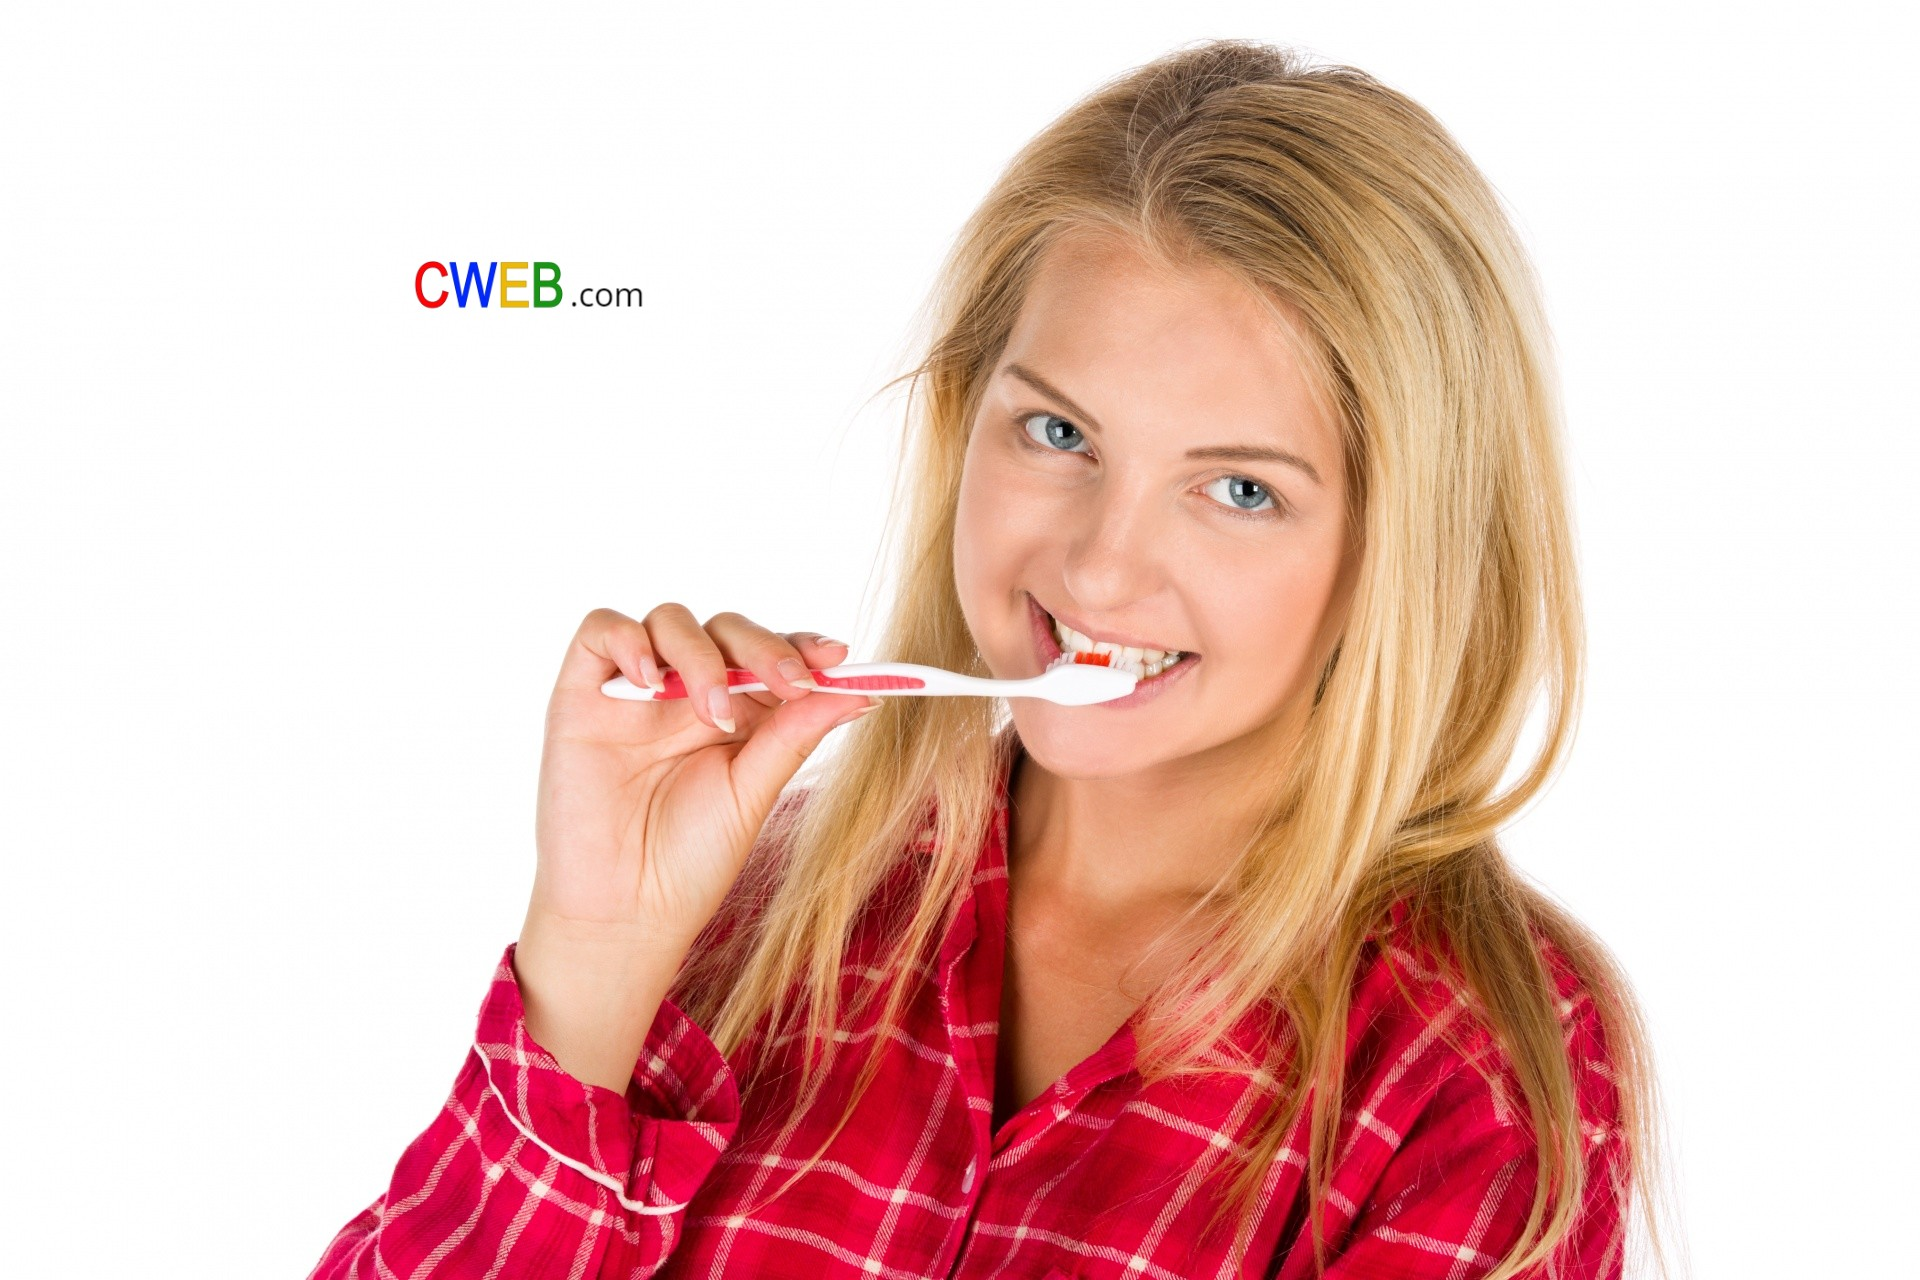 woman-brushing-teeth-150641485679F